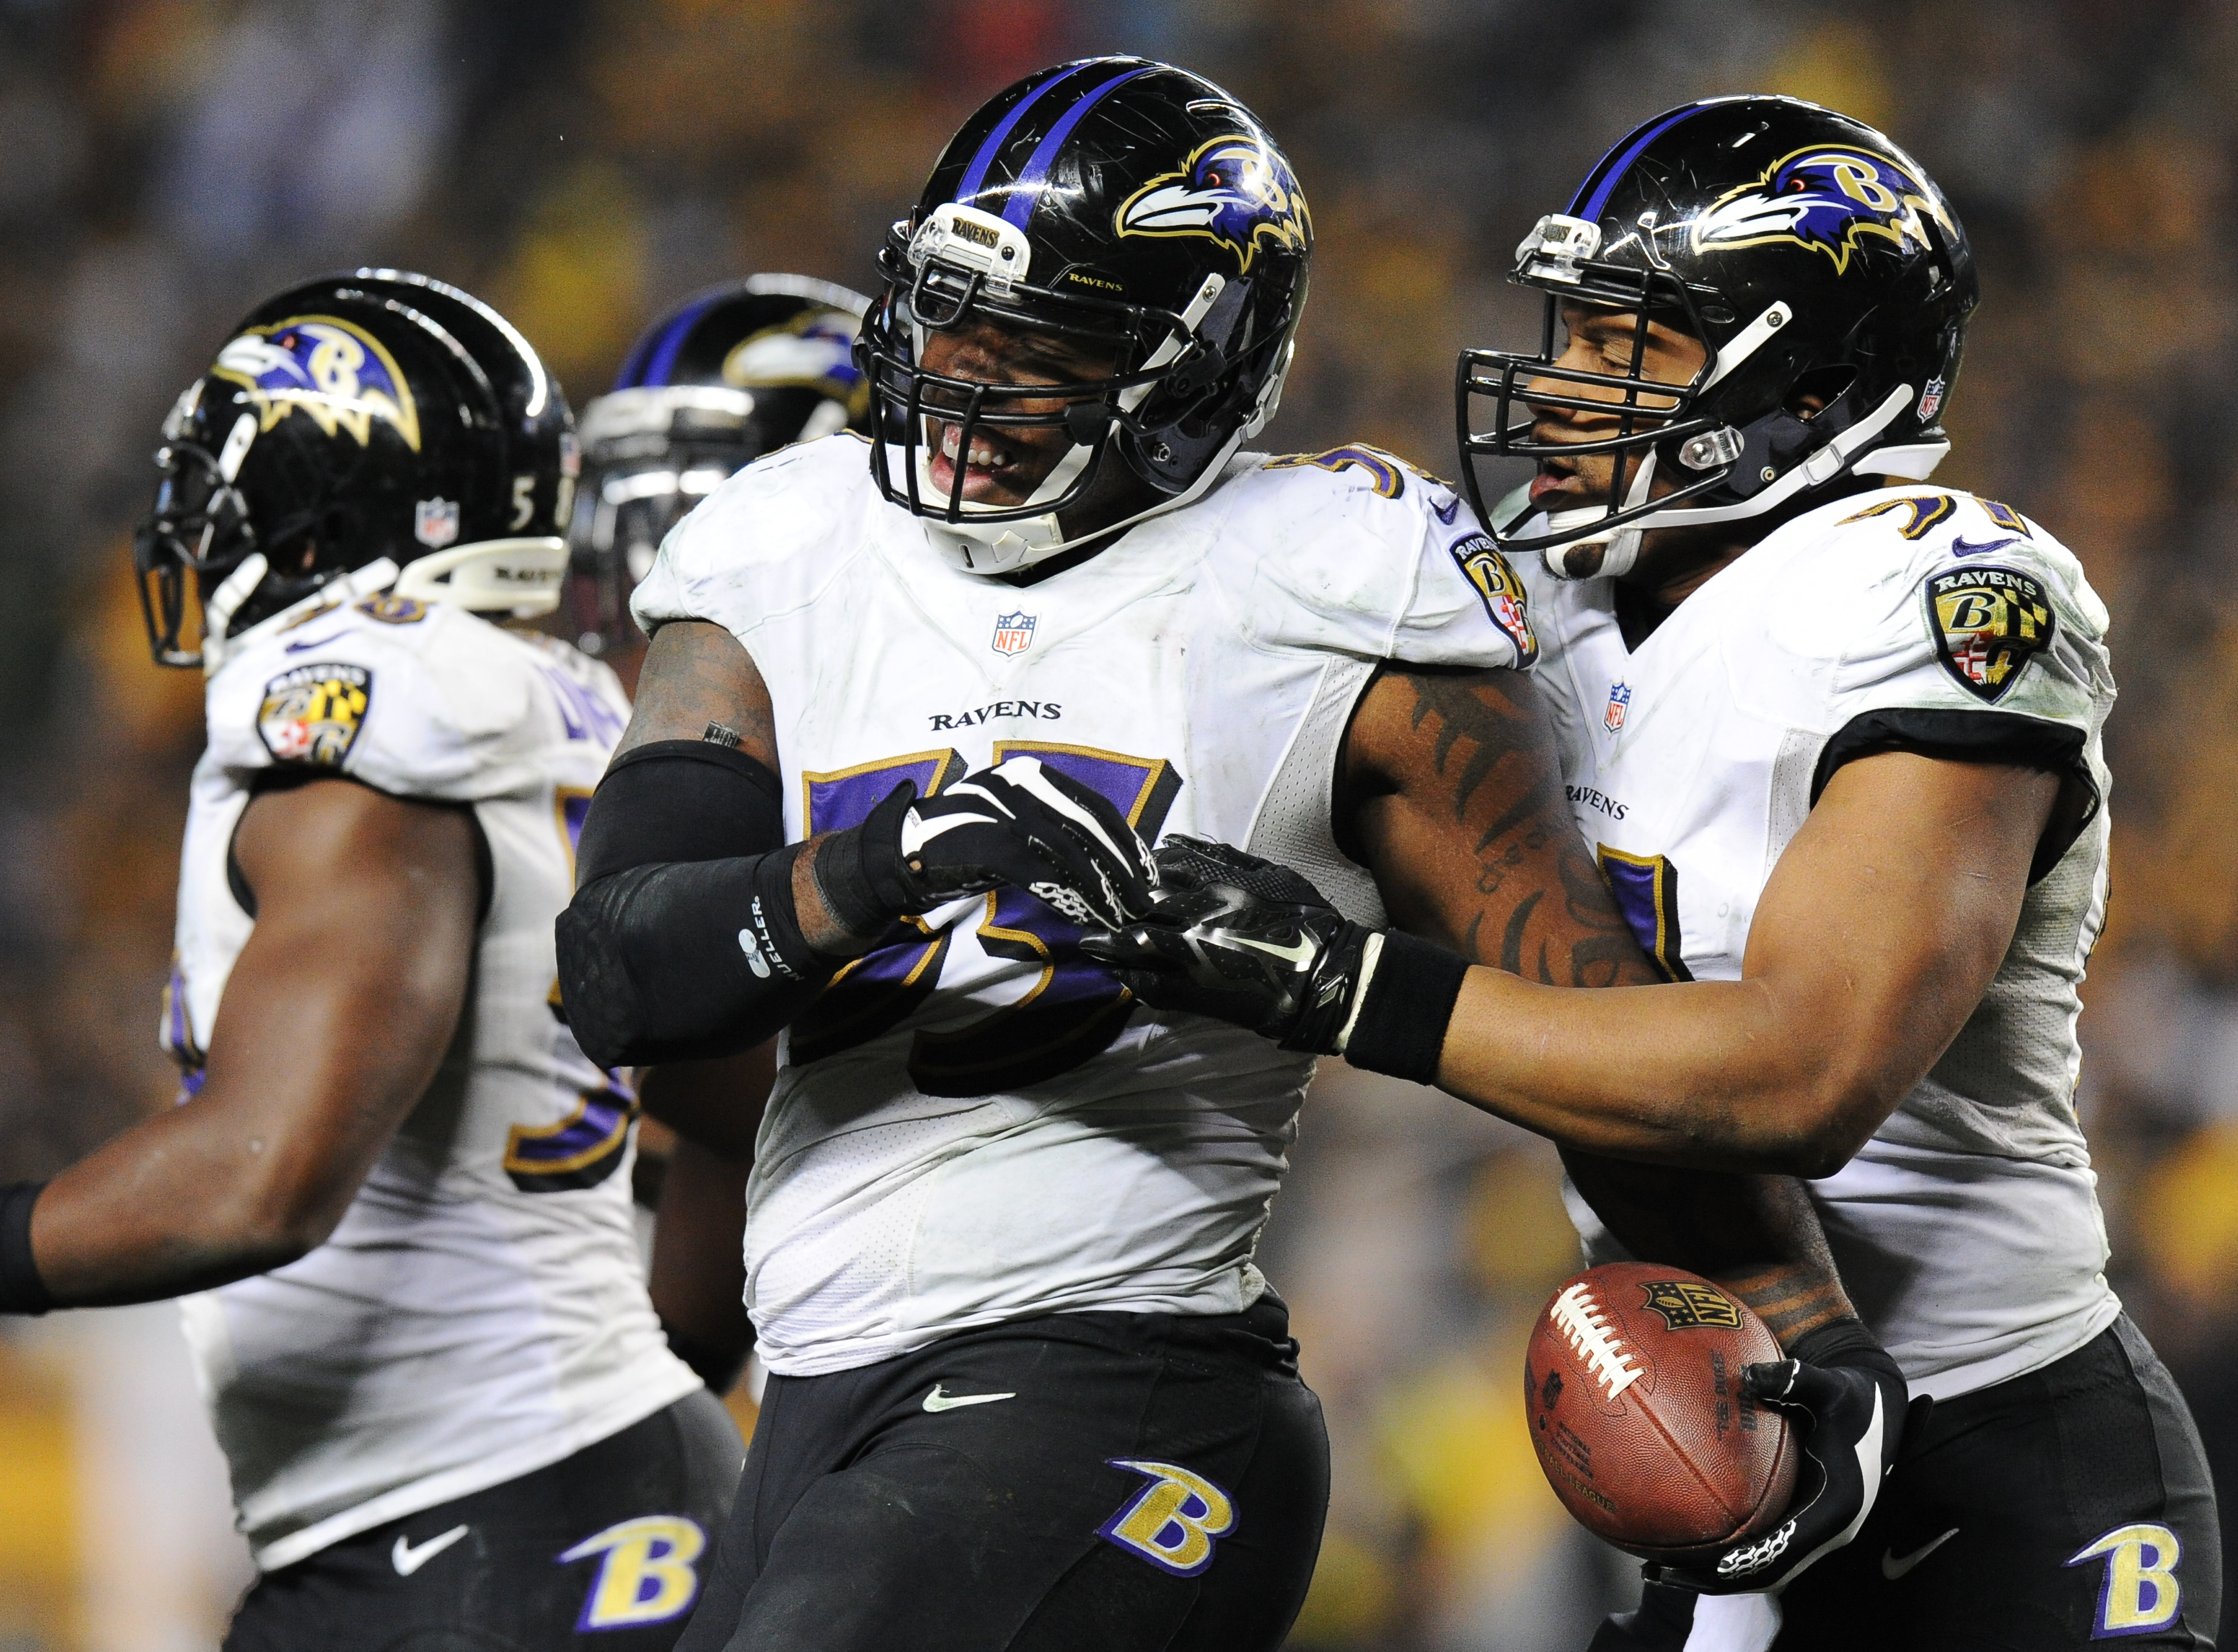 Terrell Suggs filling leadership role with Ravens after Ray Lewis